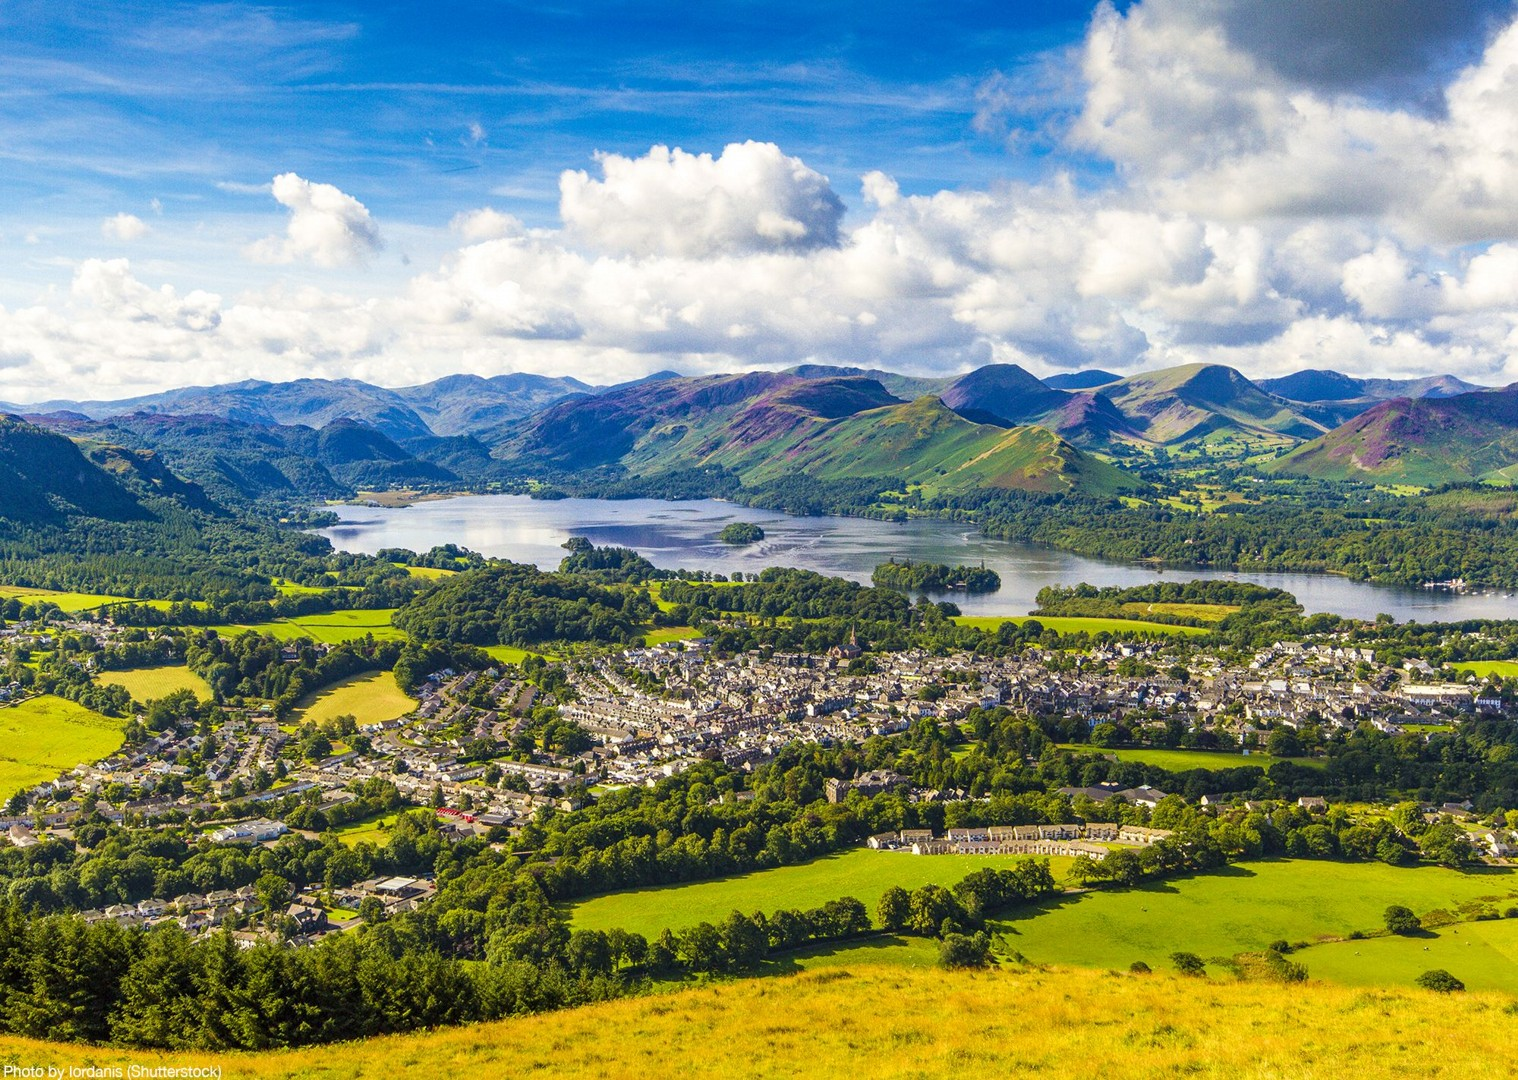 derwent-bank-keswick-hills-leisure-lakes-cycling-local-villages.jpg - UK - North Lake District Explorer - Guided Road Cycling Weekend - Road Cycling